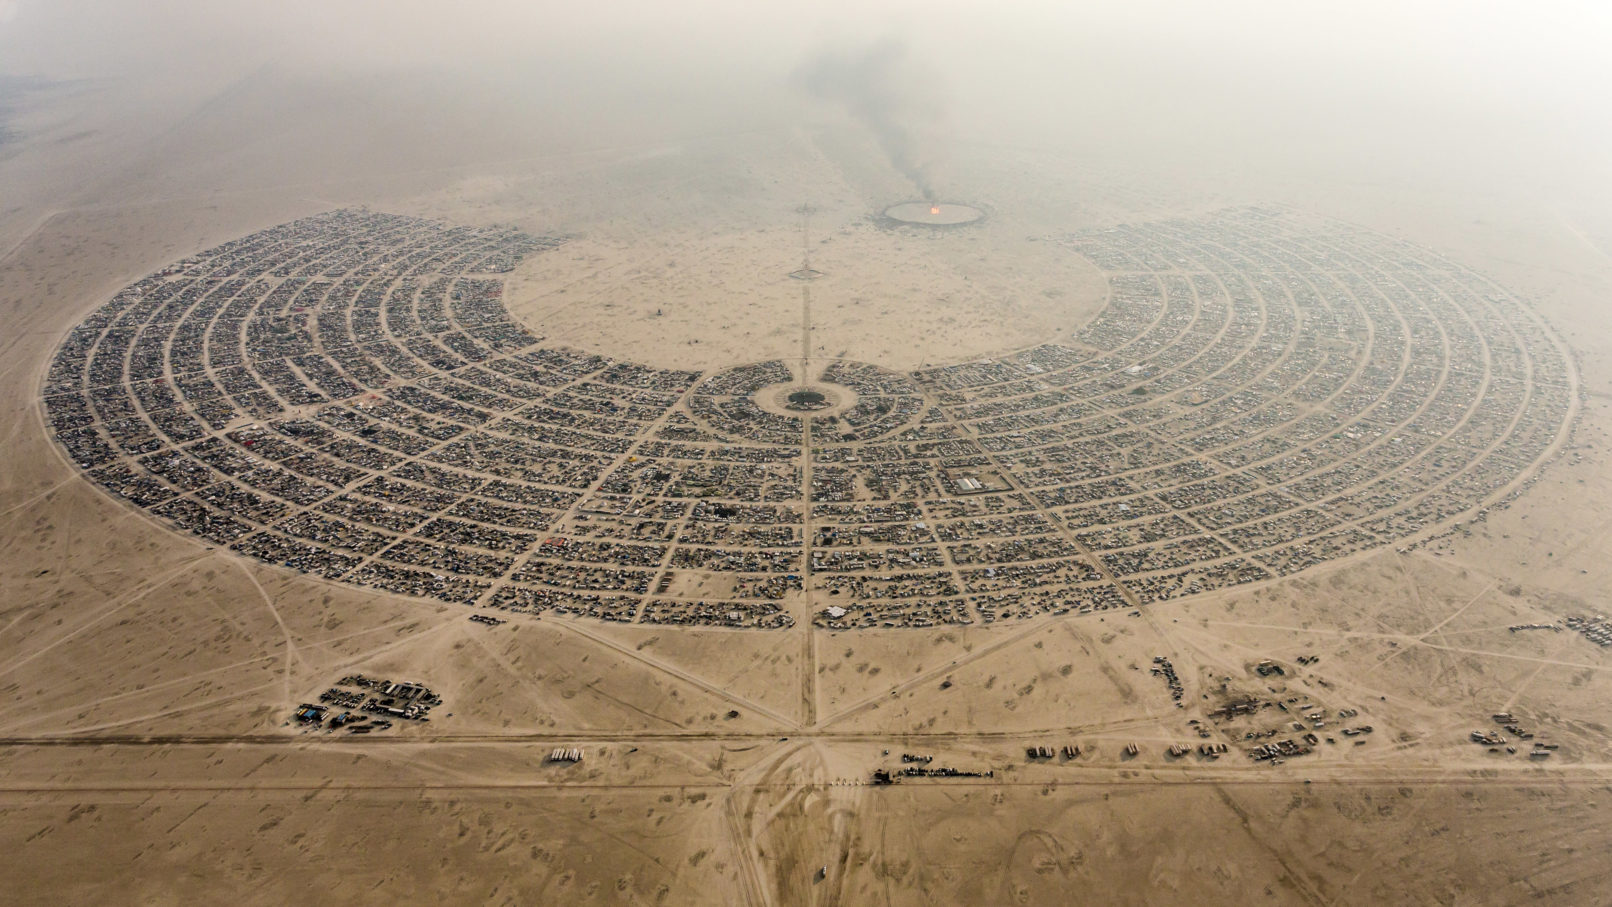 Burning man satellite photo 2012 DigitalGlobe s Top Satellite Images of 2012 «TwistedSifter